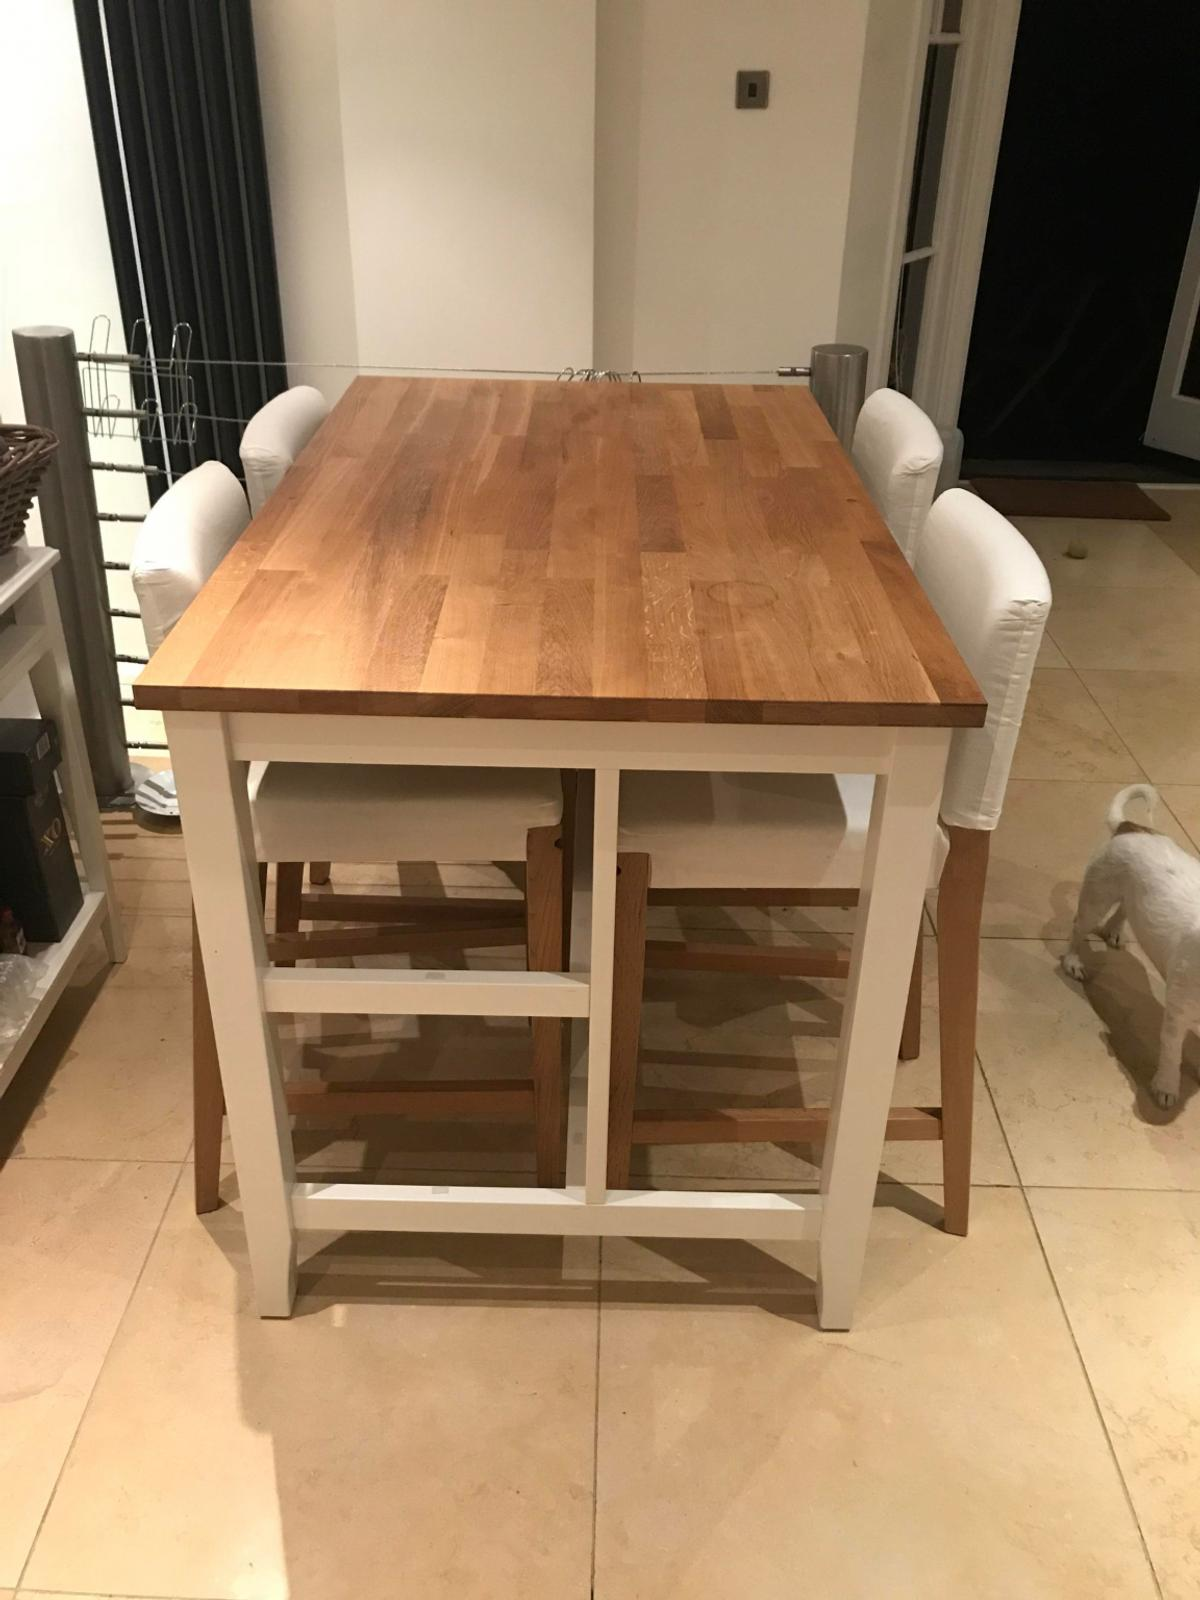 Awe Inspiring Ikea Stenstorp Kitchen Island And Chairs Unemploymentrelief Wooden Chair Designs For Living Room Unemploymentrelieforg